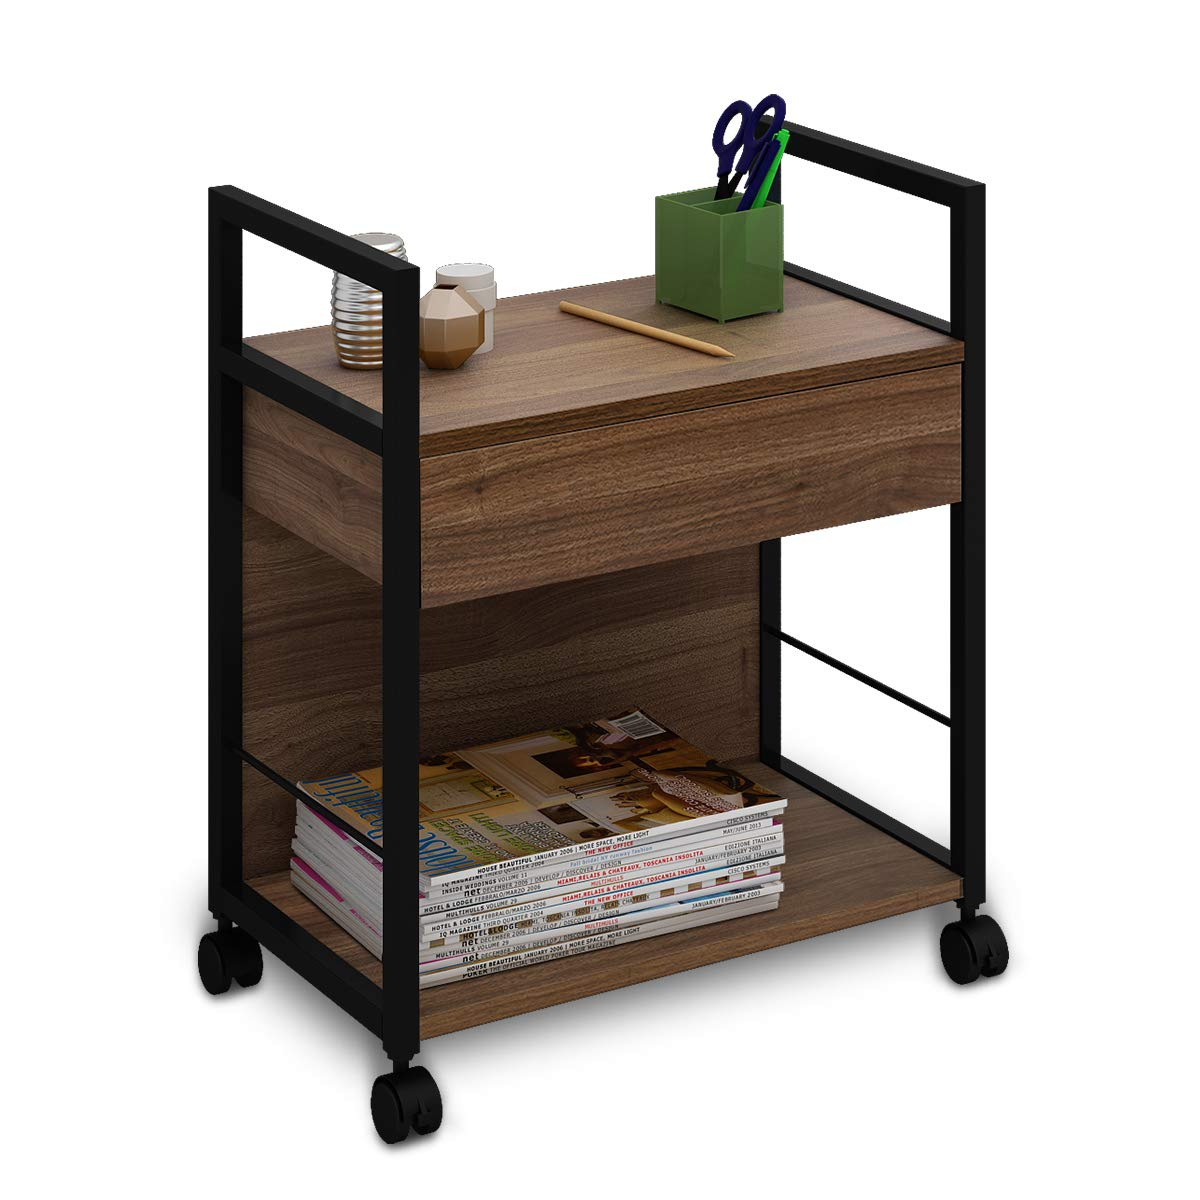 WLIVE Mobile Printer Stand, Office Serving Cart, Computer Side Table Machine Cart Stand with Storage Drawer for Home Office by WLIVE (Image #1)